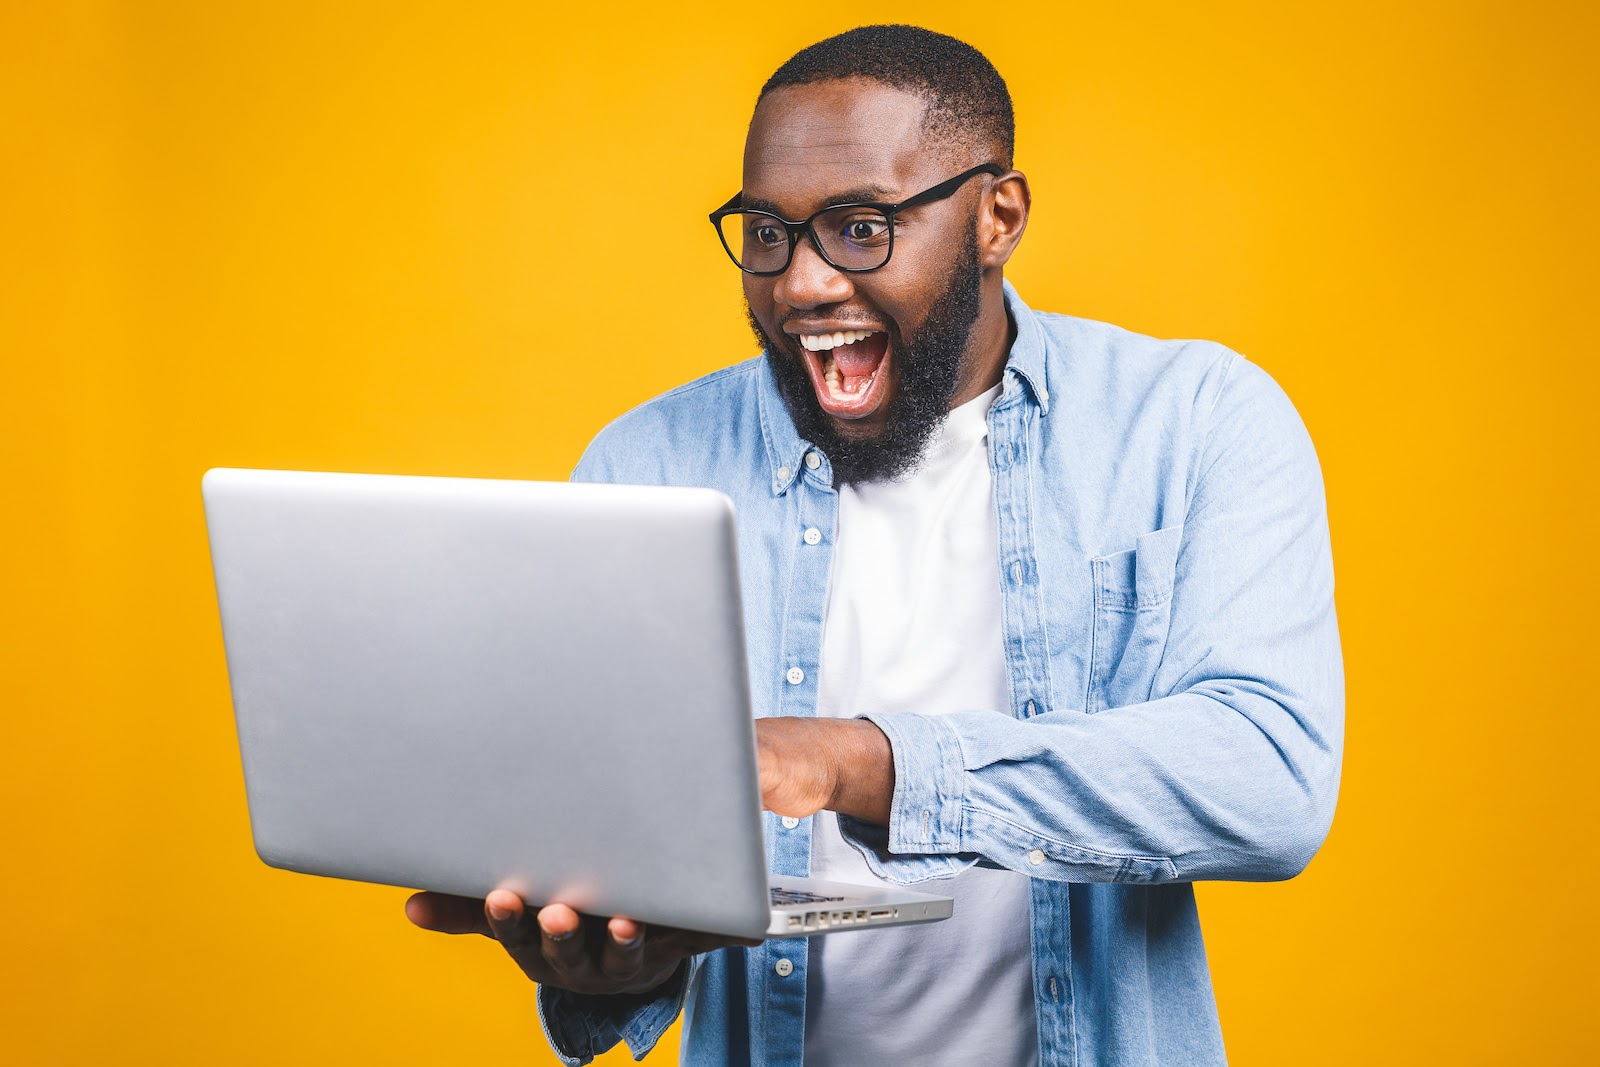 A man is excited about sales incentives for customers that he's received on his laptop